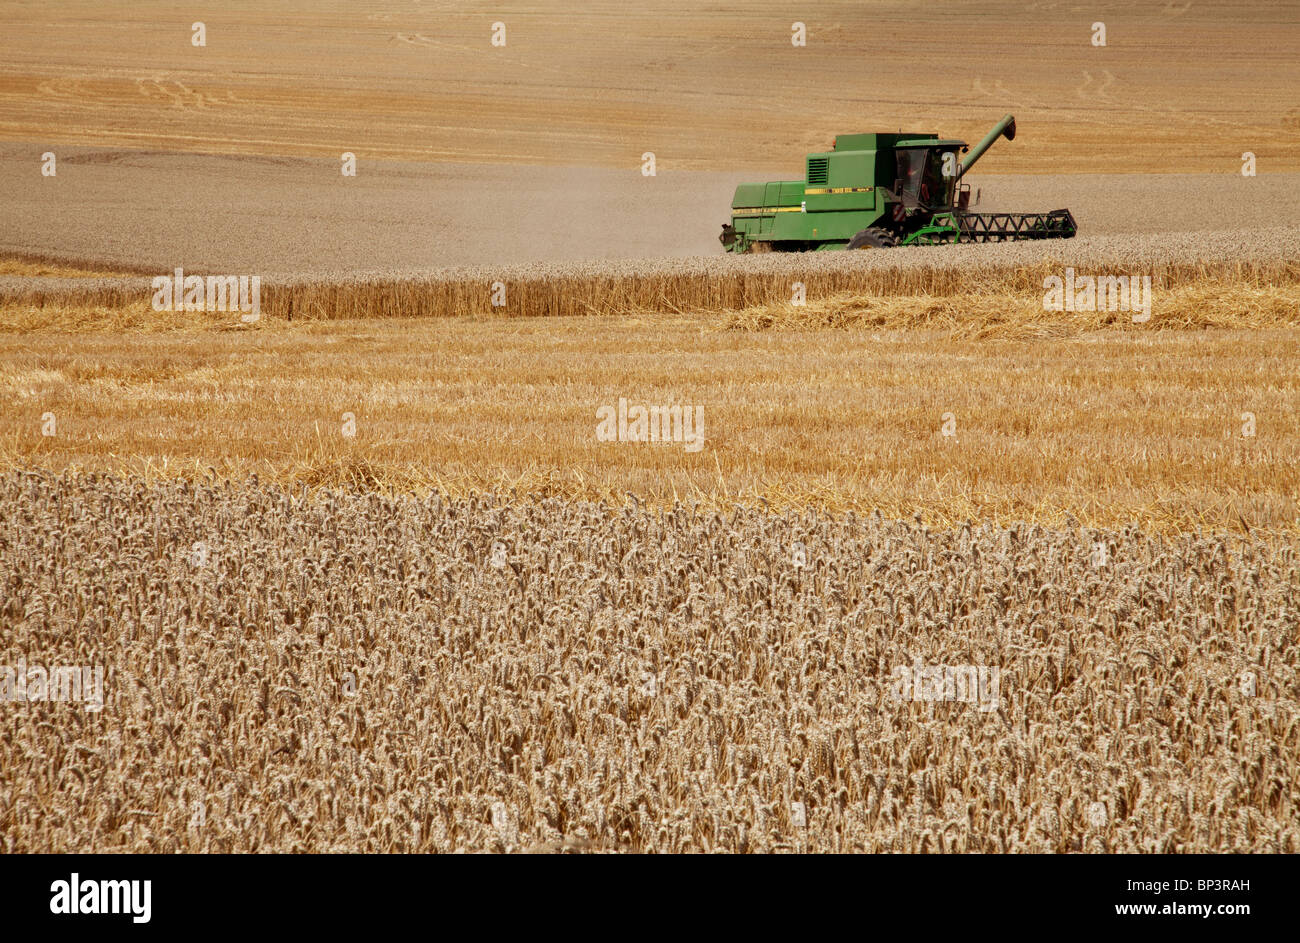 HARVESTING WHEAT - Stock Image